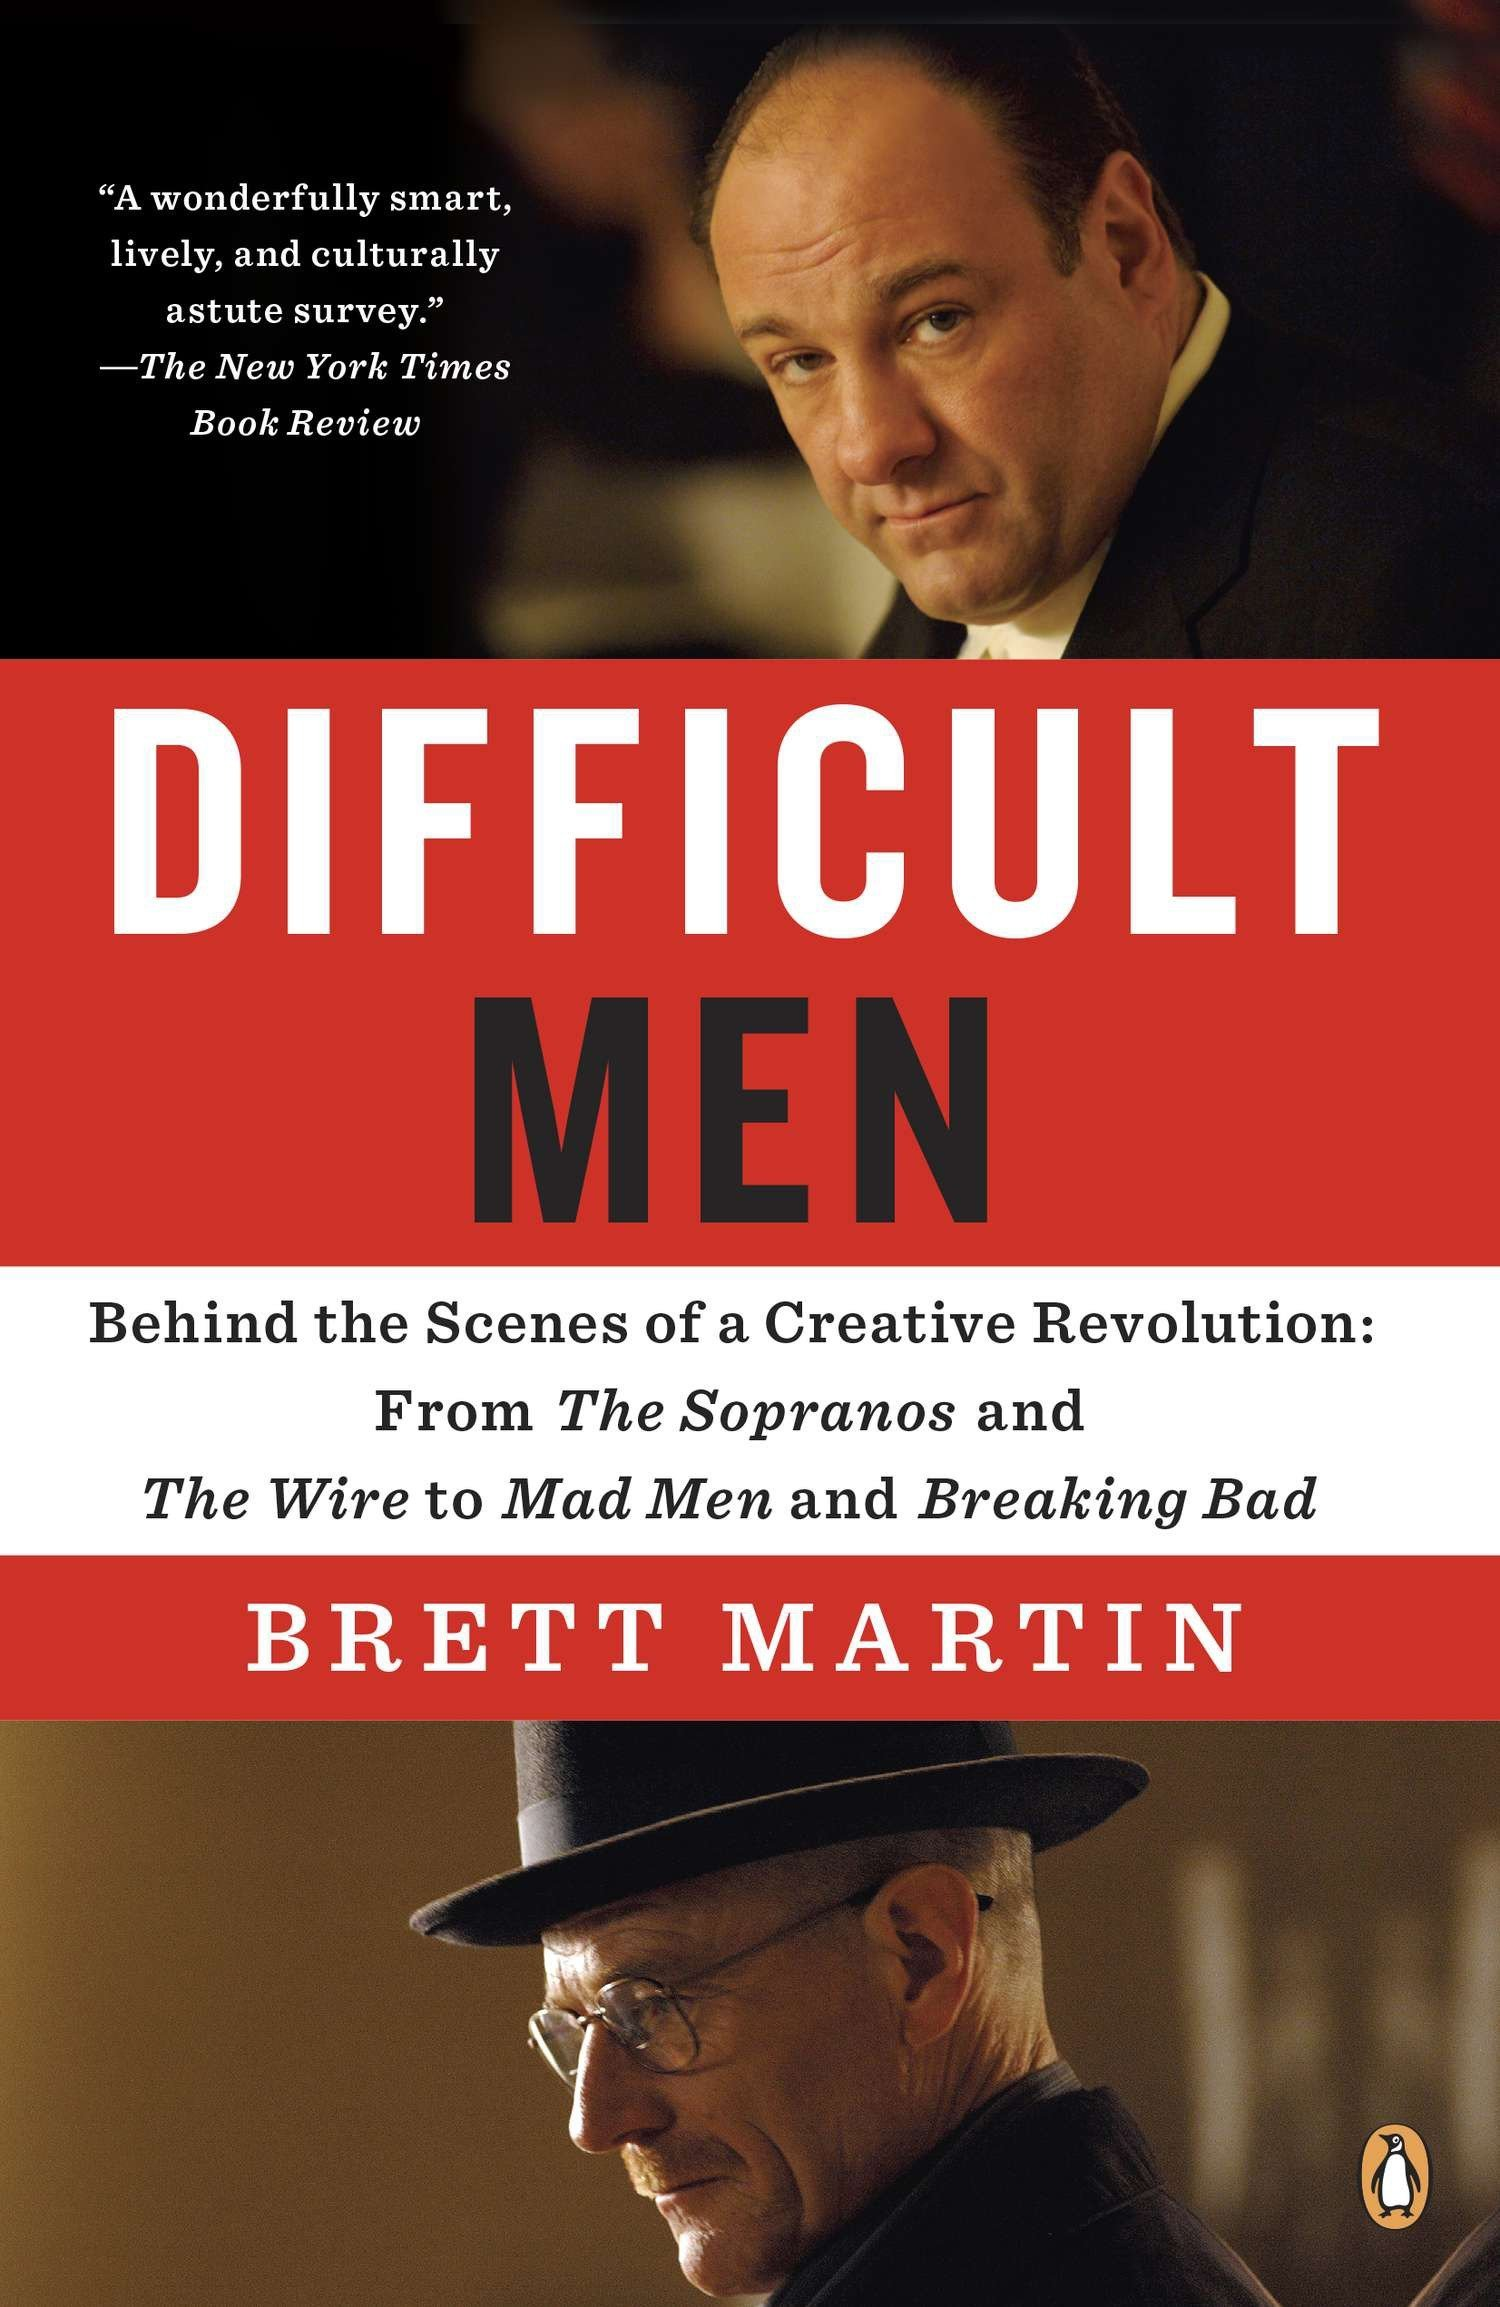 689f442f37f Difficult Men  Behind the Scenes of a Creative Revolution  From the  Sopranos and the Wire to Mad Men and Breaking Bad (Inglês) Capa Comum – 28  jul 2014